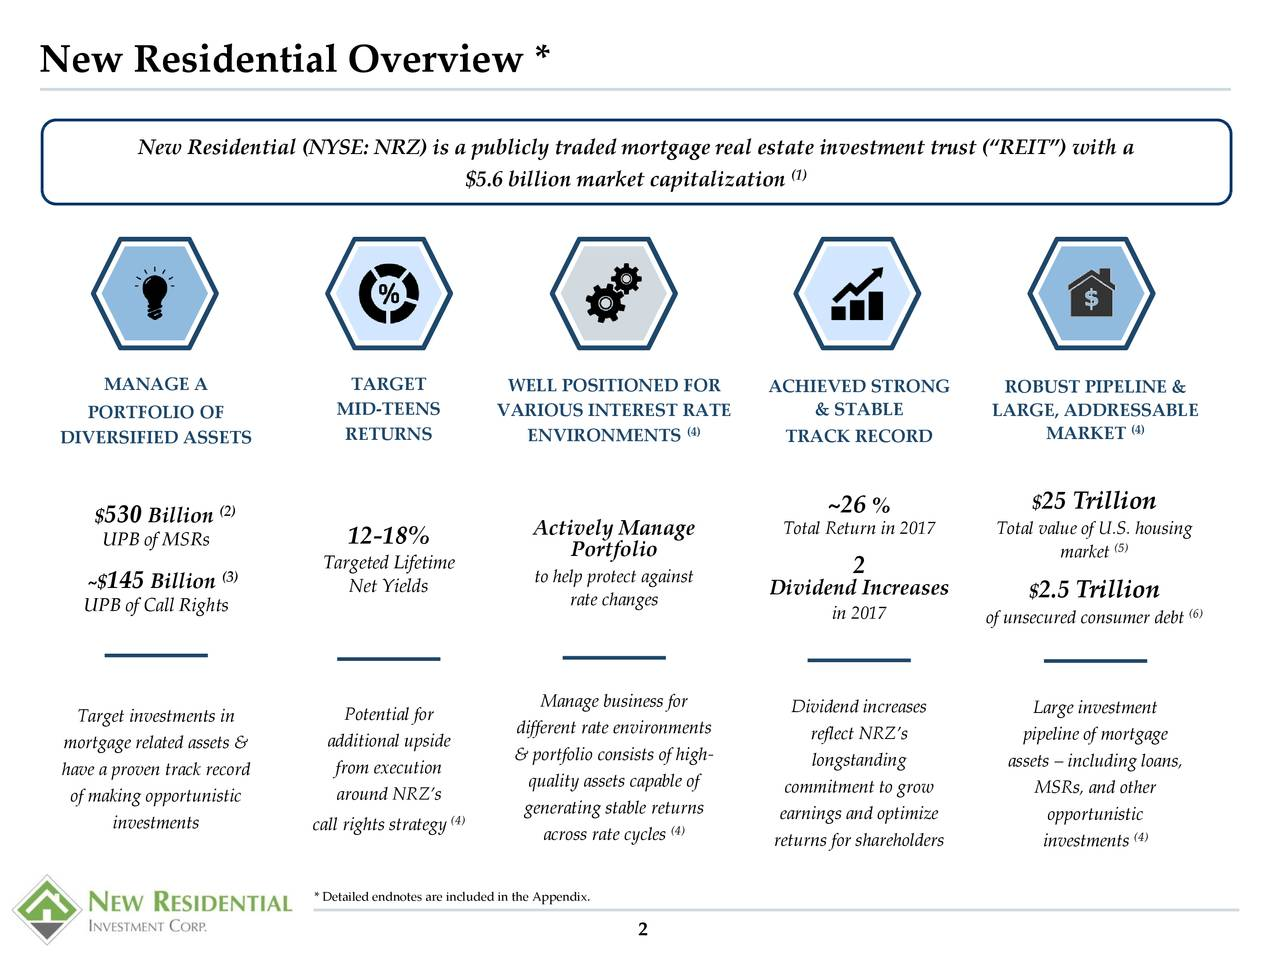 """New Residential (NYSE: NRZ) is a publicly traded mortgage real estate investment trust (""""REIT"""") with a (1) $5.6 billion market capitalization MANAGE A TARGET WELL POSITIONED FOR ACHIEVED STRONG ROBUST PIPELINE & PORTFOLIO OF MID-TEENS VARIOUS INTEREST RATE & STABLE LARGE, ADDRESSABLE (4) (4) DIVERSIFIED ASSETS RETURNS ENVIRONMENTS TRACK RECORD MARKET $530 Billion (2) ~26 % $ 25 Trillion Actively Manage Total Return in 2017 Total value of U.S. housing UPB of MSRs 12-18% Portfolio (5) Targeted Lifetime 2 market ~$145 Billion (3) to help protect against Net Yields rate changes Dividend Increases $2.5 Trillion UPB of Call Rights in 2017 of unsecured consumer debt) Manage business for Target investments in Potential for Dividend increases Large investment different rate environments reflect NRZ's pipeline of mortgage mortgage related assets & additional upside & portfolio consists of high- have a proven track record from execution longstanding assets – including loans, quality assets capable of commitment to grow MSRs, and other of making opportunistic around NRZ's generating stable returns investments call rights strategy earnings and optimize opportunistic across rate cycles returns for shareholders investments4) * Detailed endnotes are included in the Appendix. 2"""